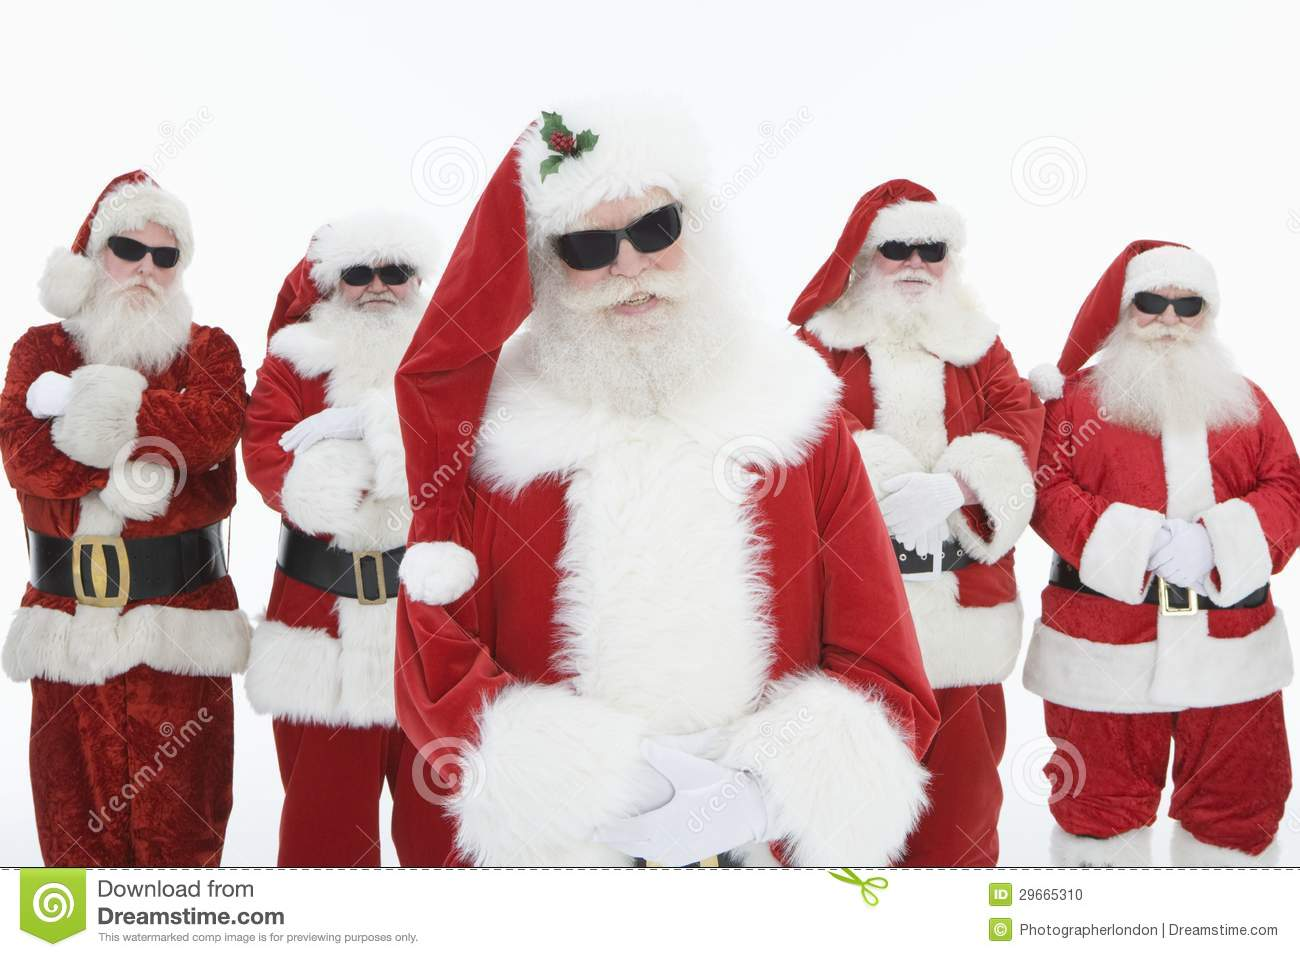 santa claus catholic single men Santa claus is a very old man so his eyesight isn't what it used to be wear some half moon spectacles at the end of your nose don't push them too high up your nose so that you can peer over them and look down at children who come to see you with bright, happy eyes.